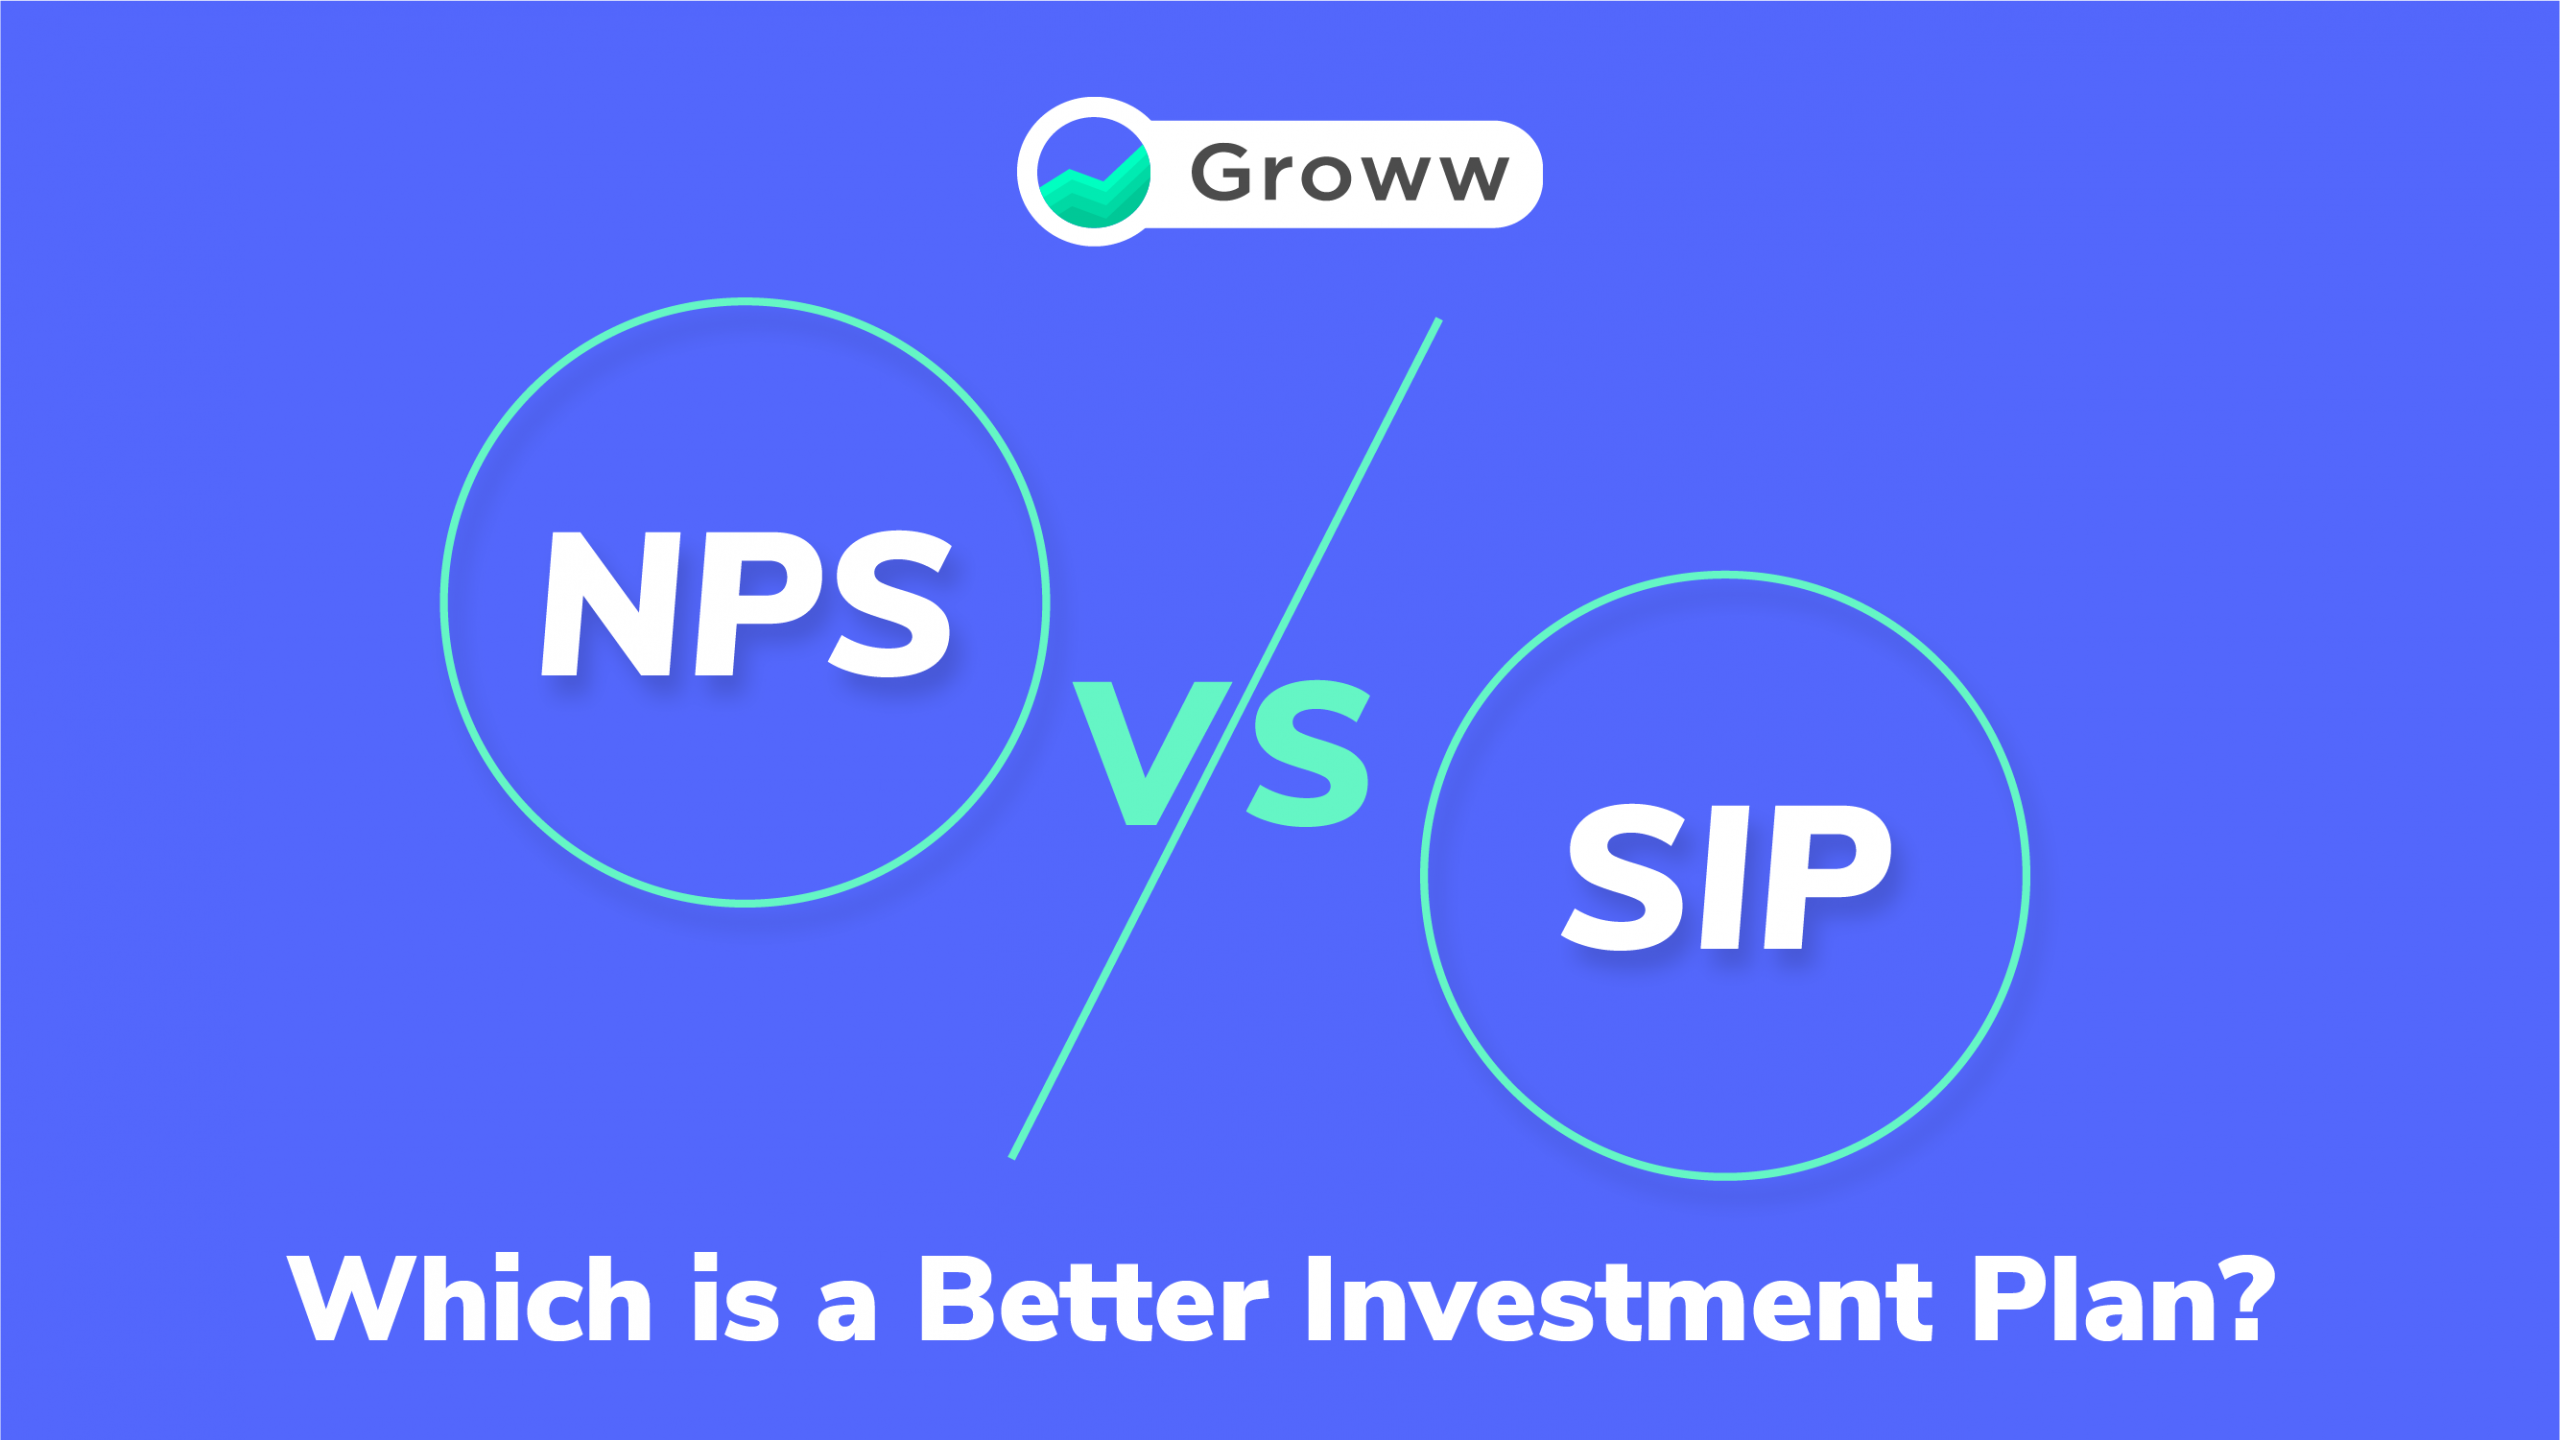 NPS vs SIP